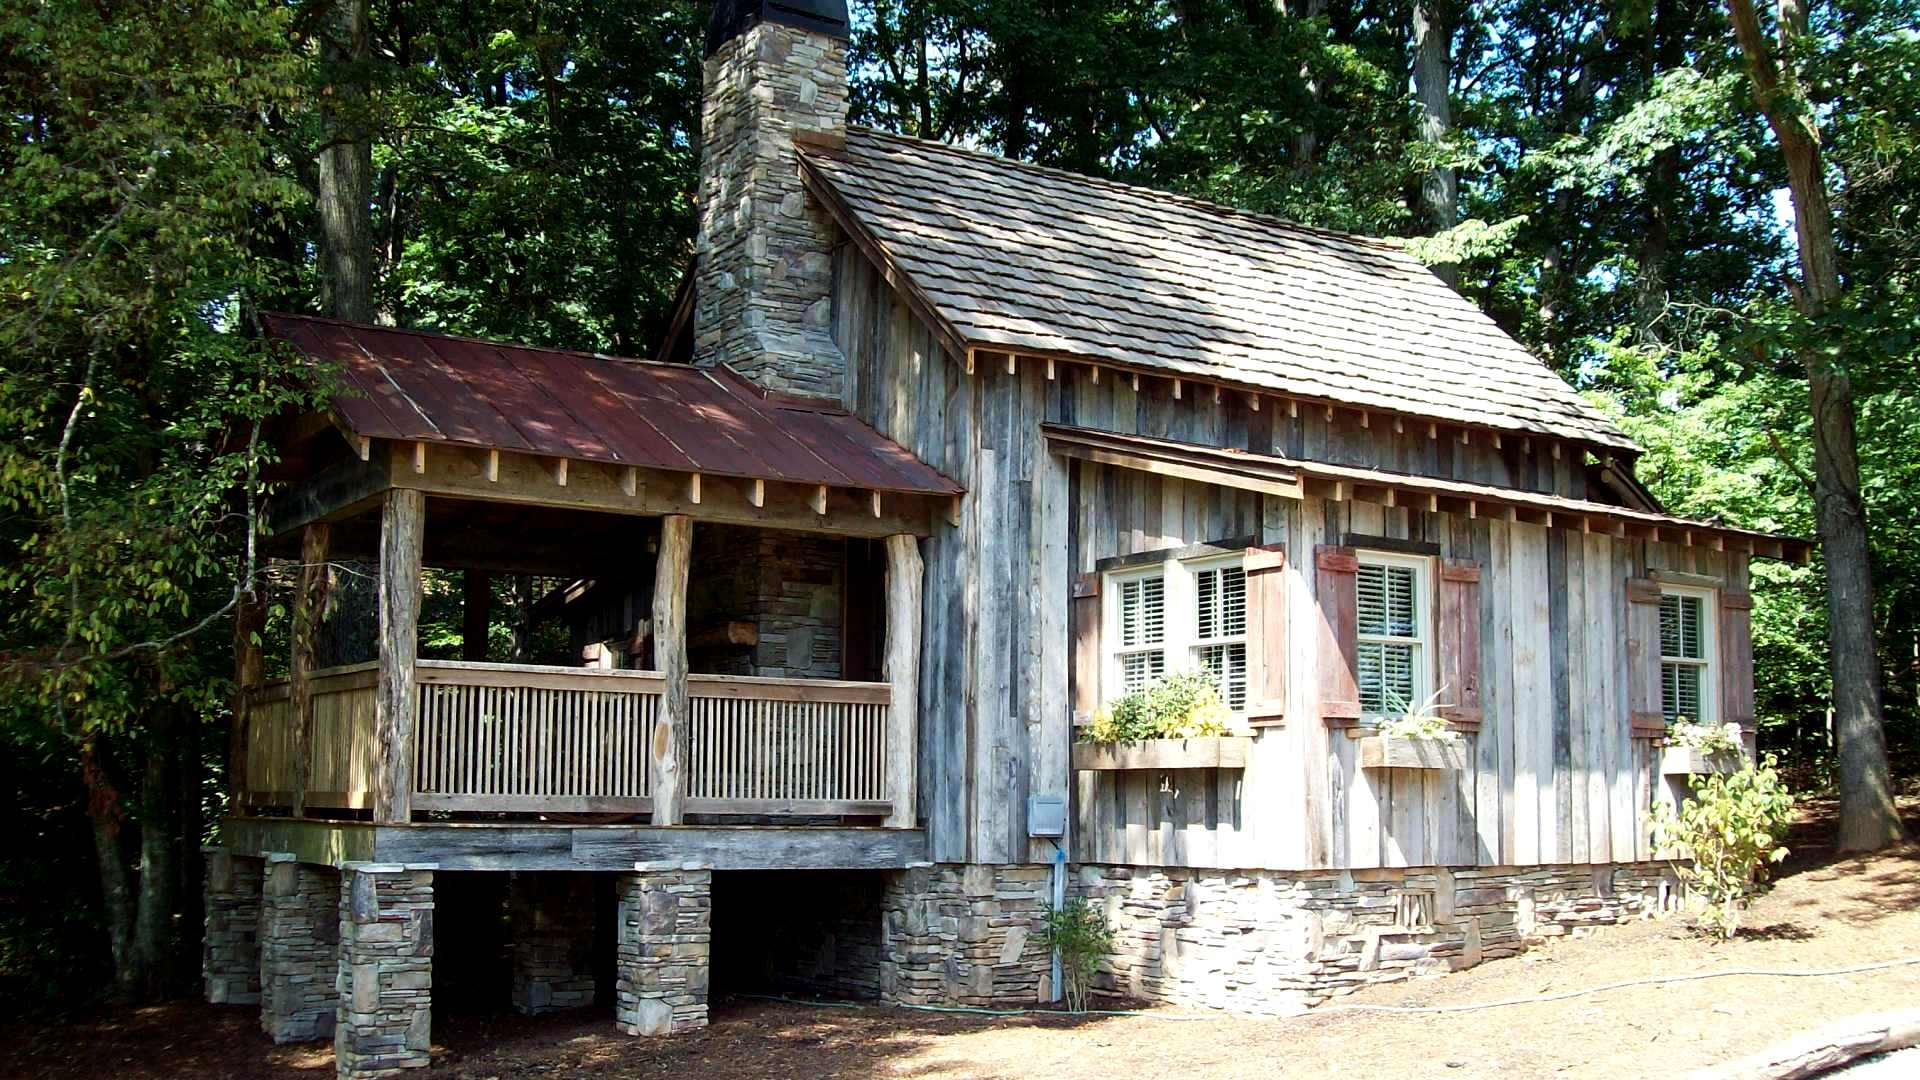 Vacation Homes For Sale In Blowing Rock Nc